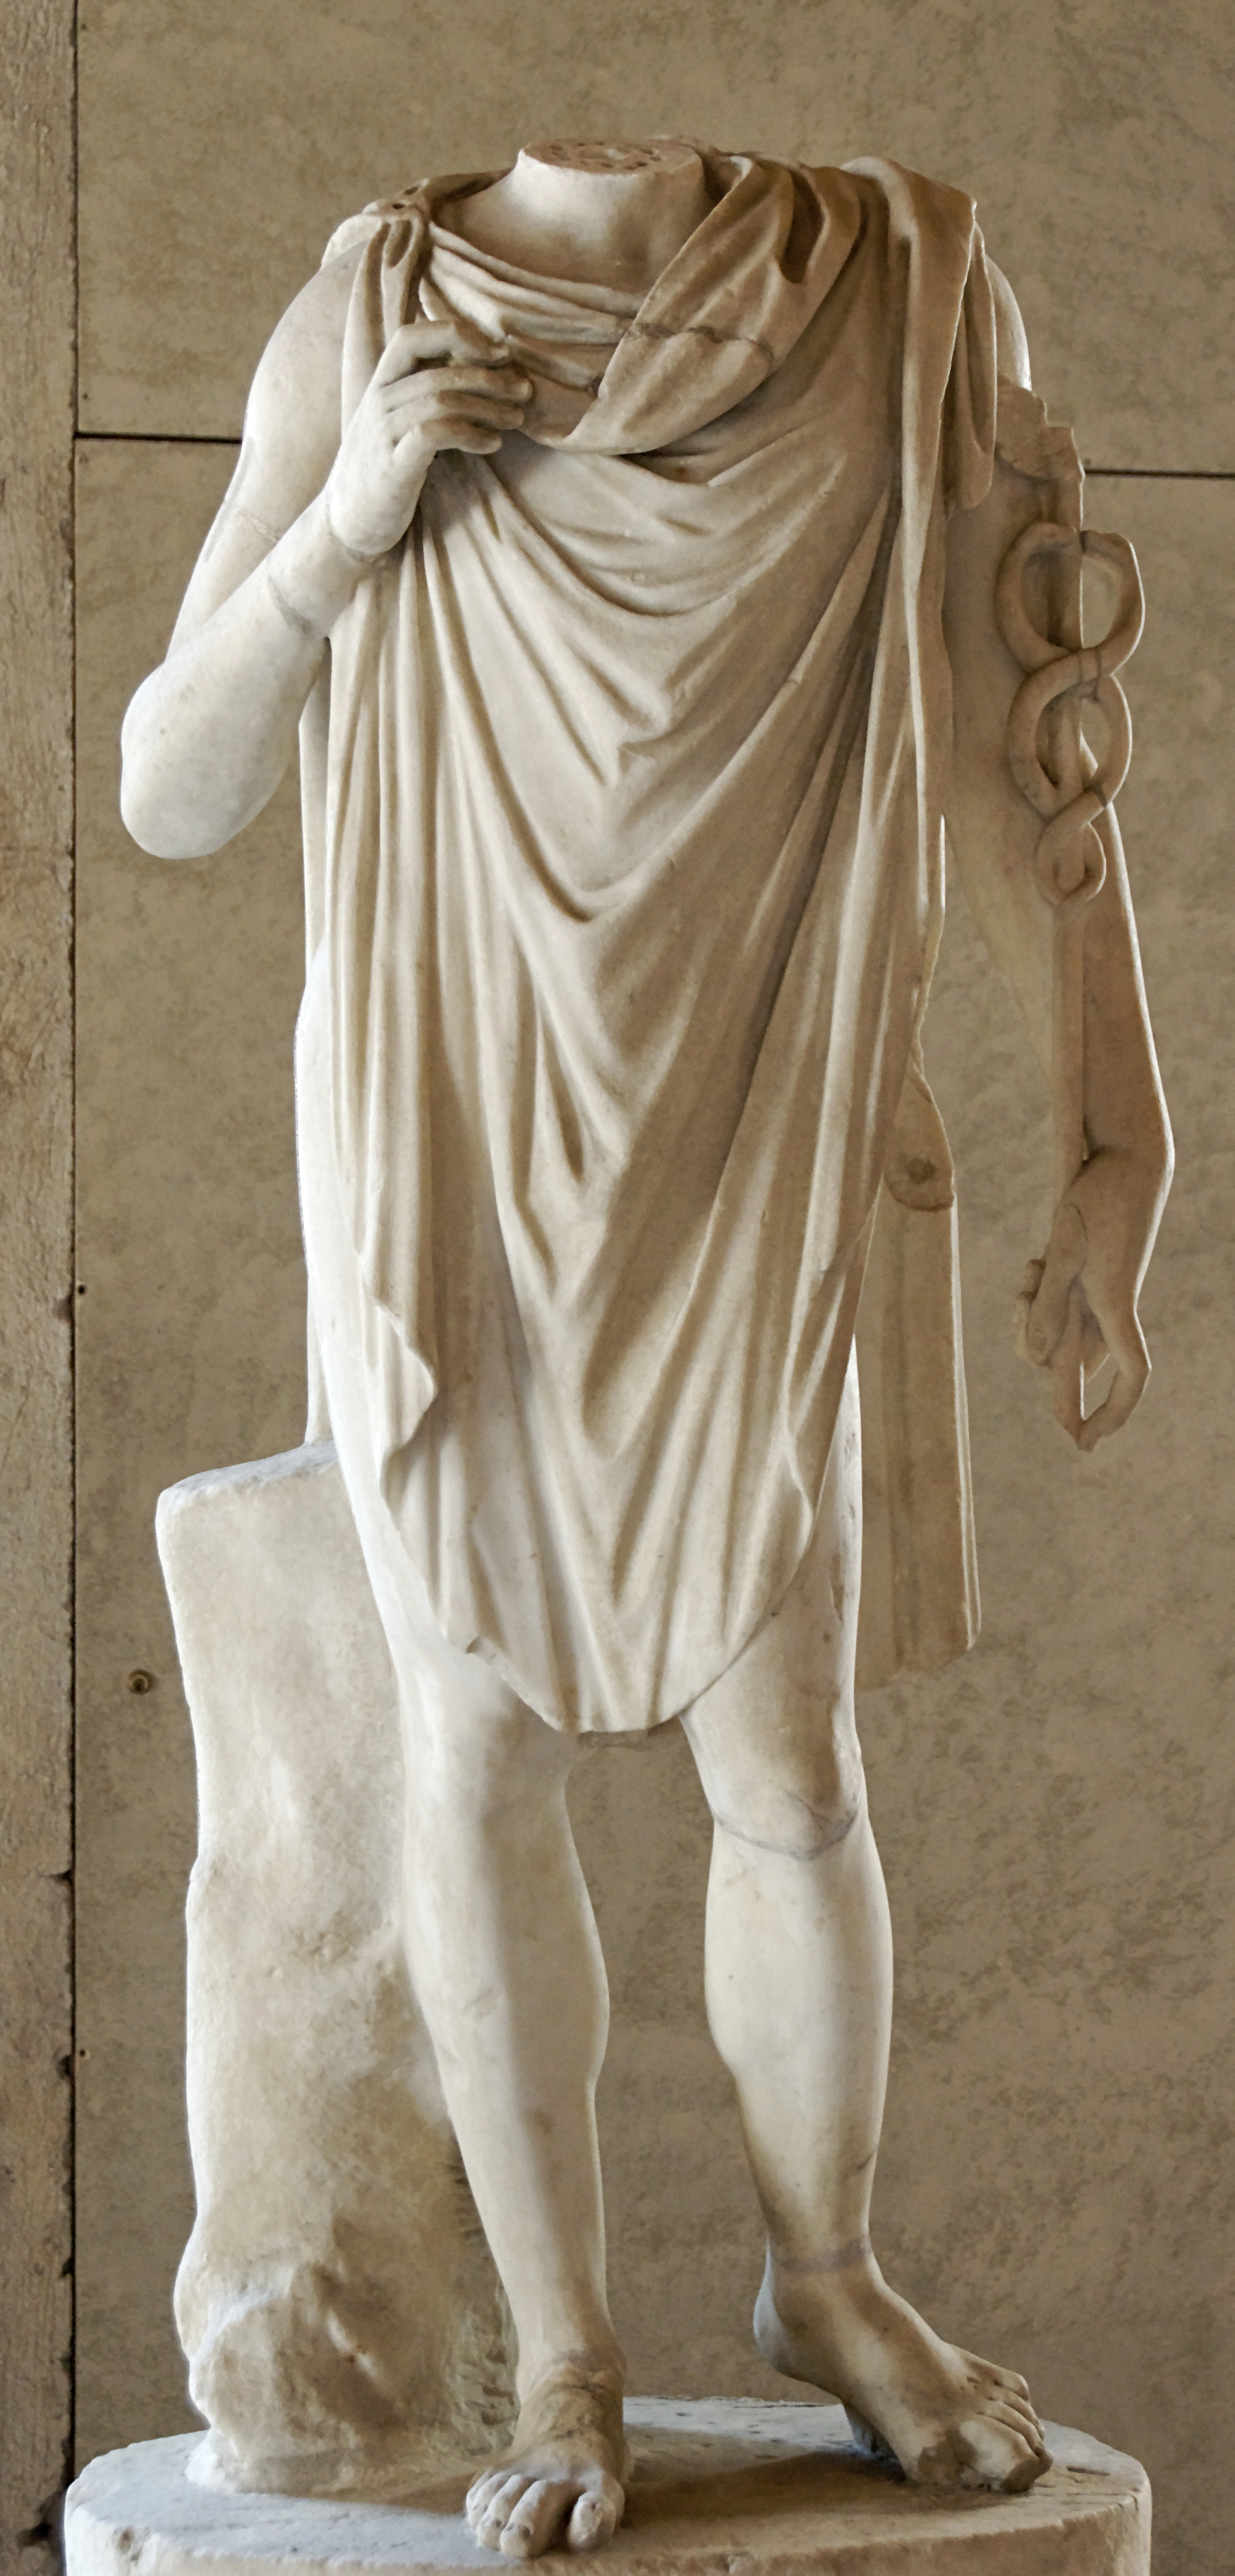 greek and roman purpose of human life The purpose of this study is to supplement the curricula of social and urban studies classes at the secondary level, by introducing greek and roman mythology and its.